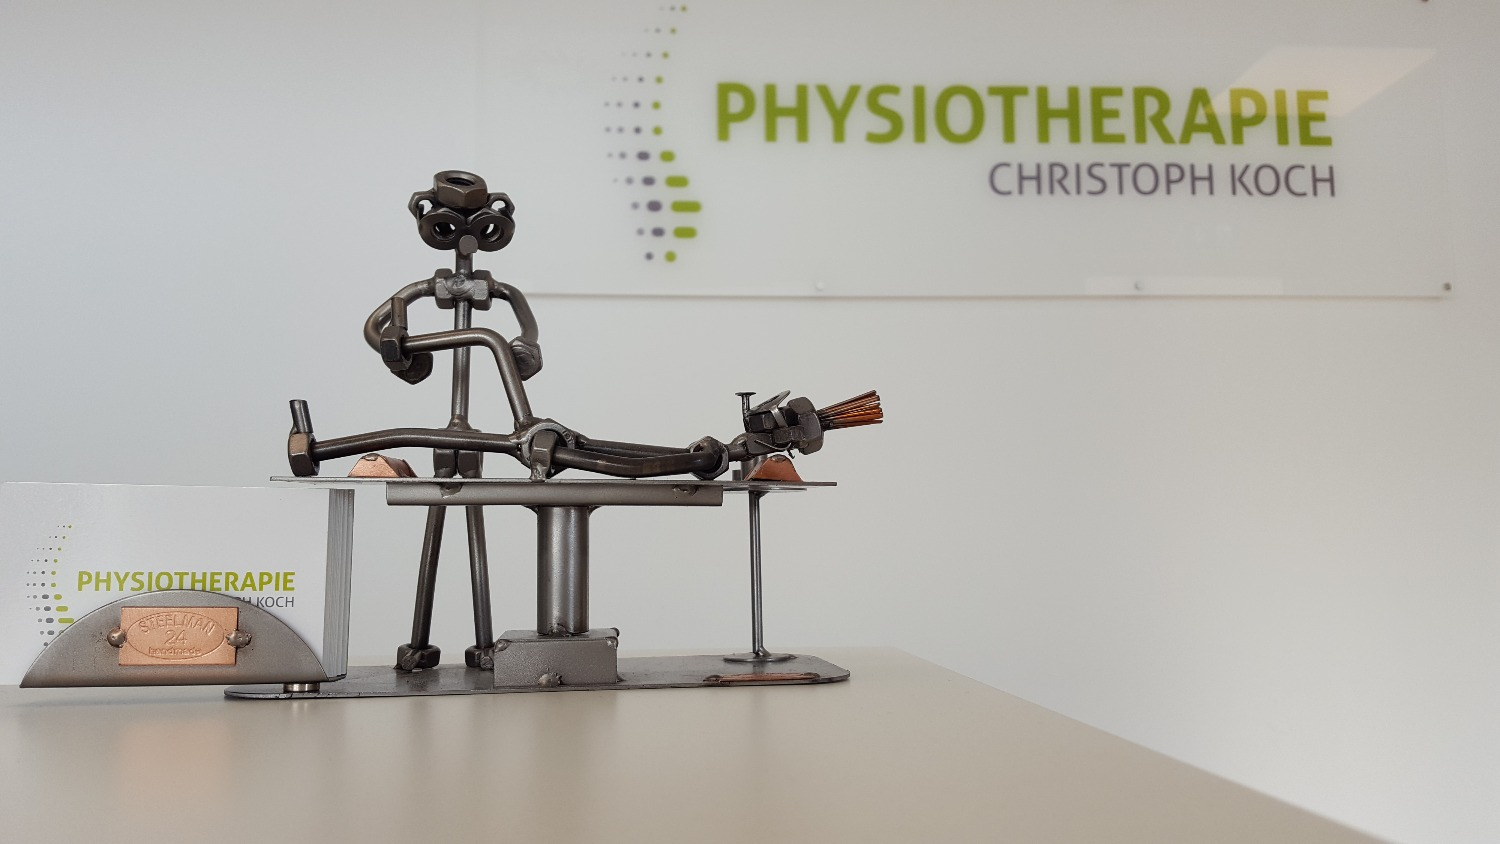 Physiotherapie Christoph Koch